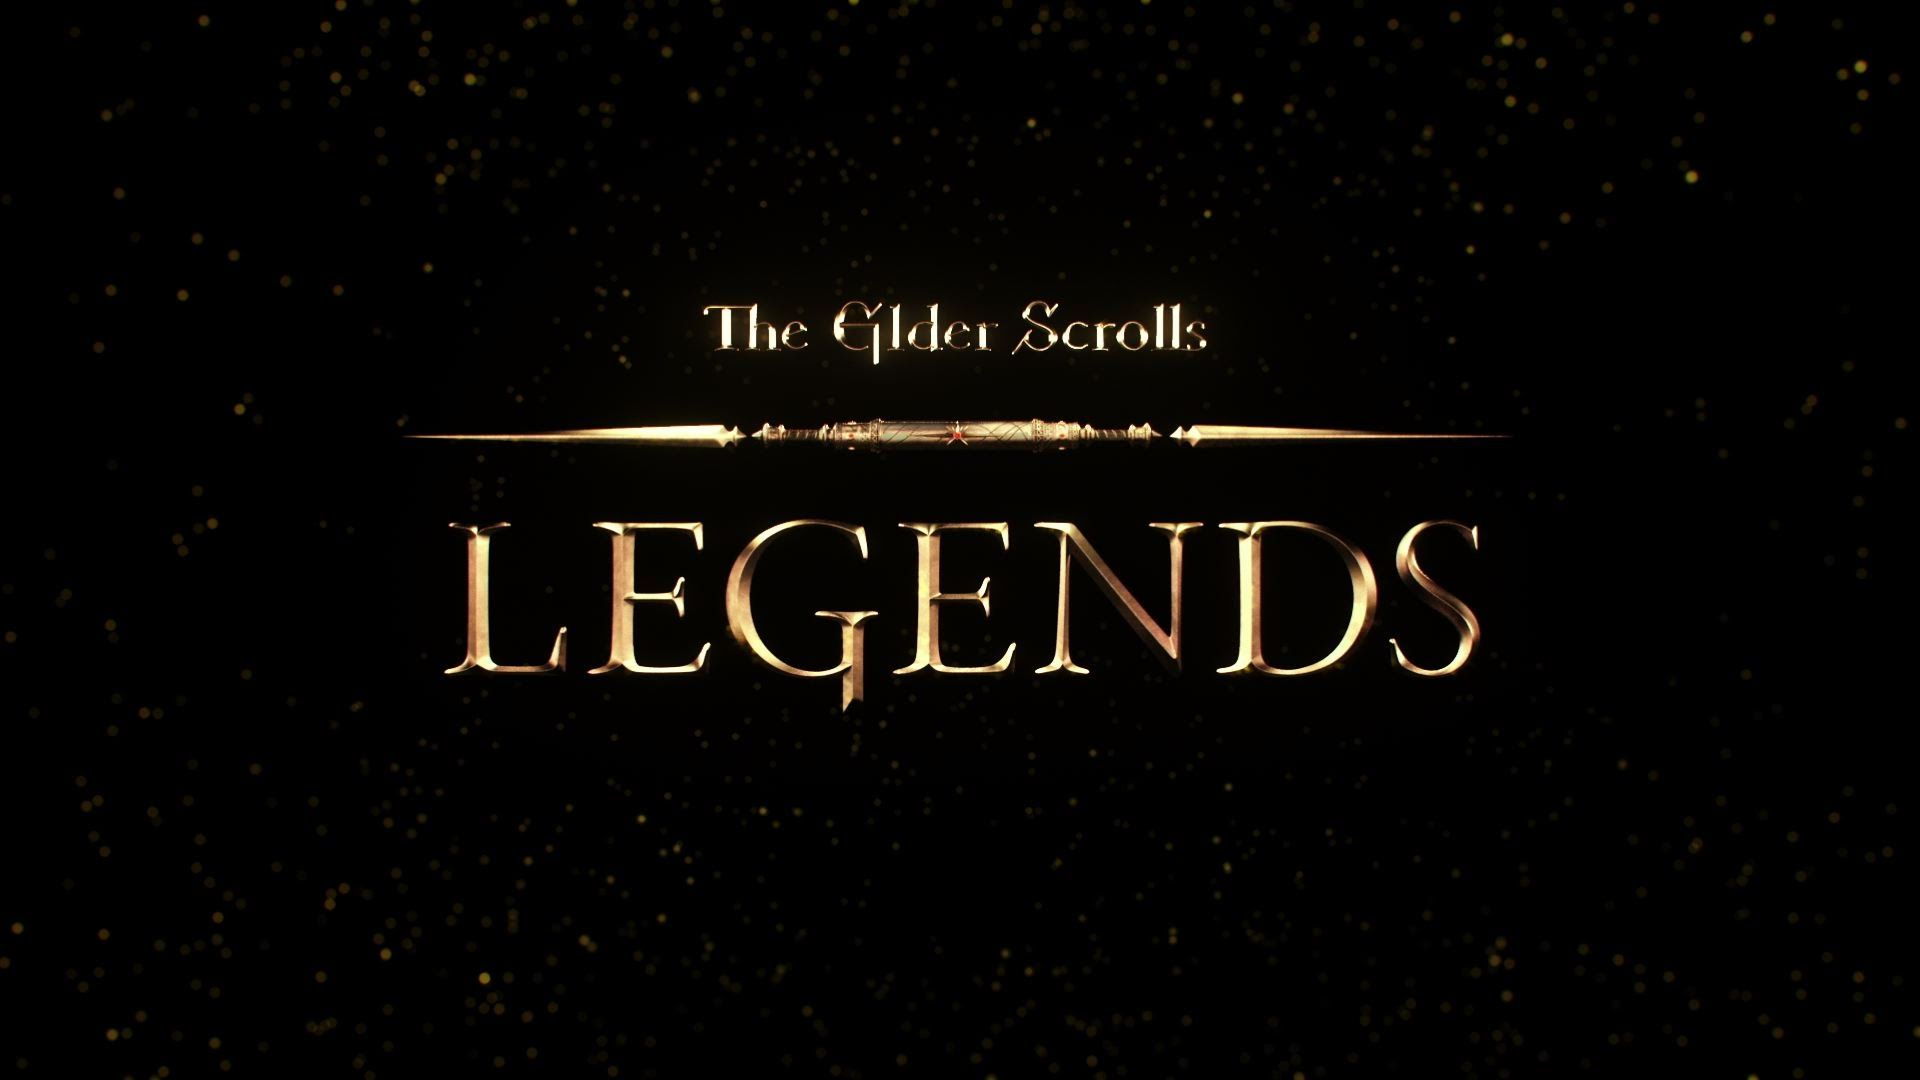 The Elder Scrolls: Legends Brings Card-Game Action To The World Of Tamriel